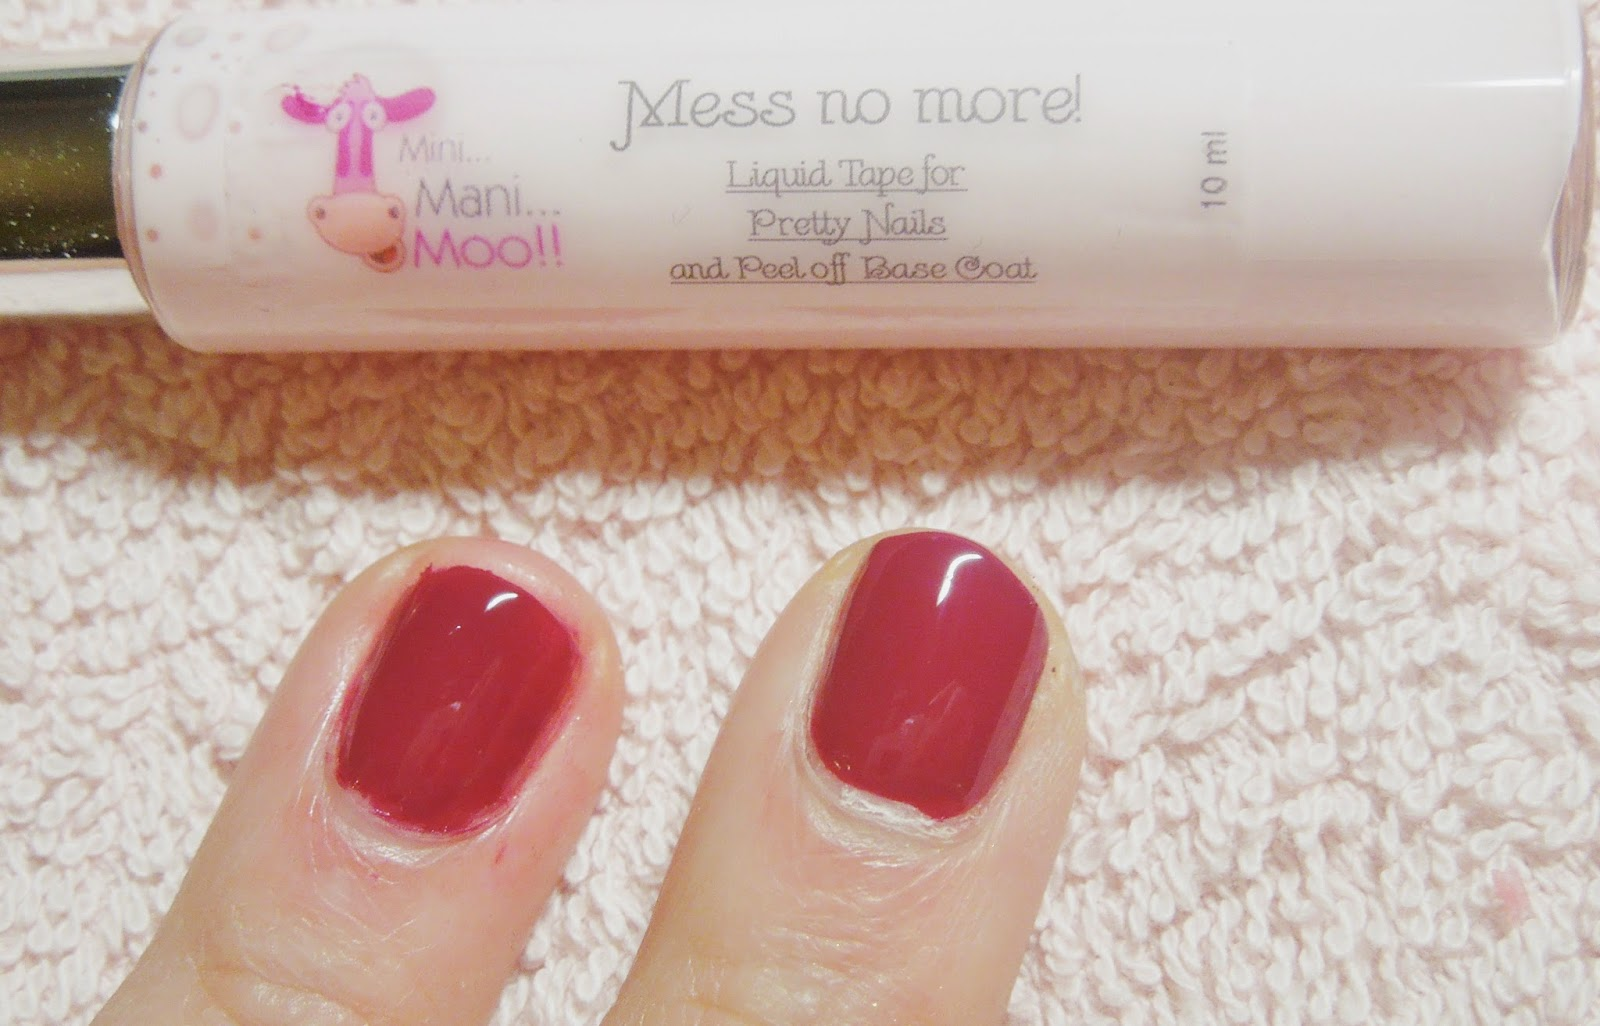 Mini Mani Moo!! ♥ Mess no more